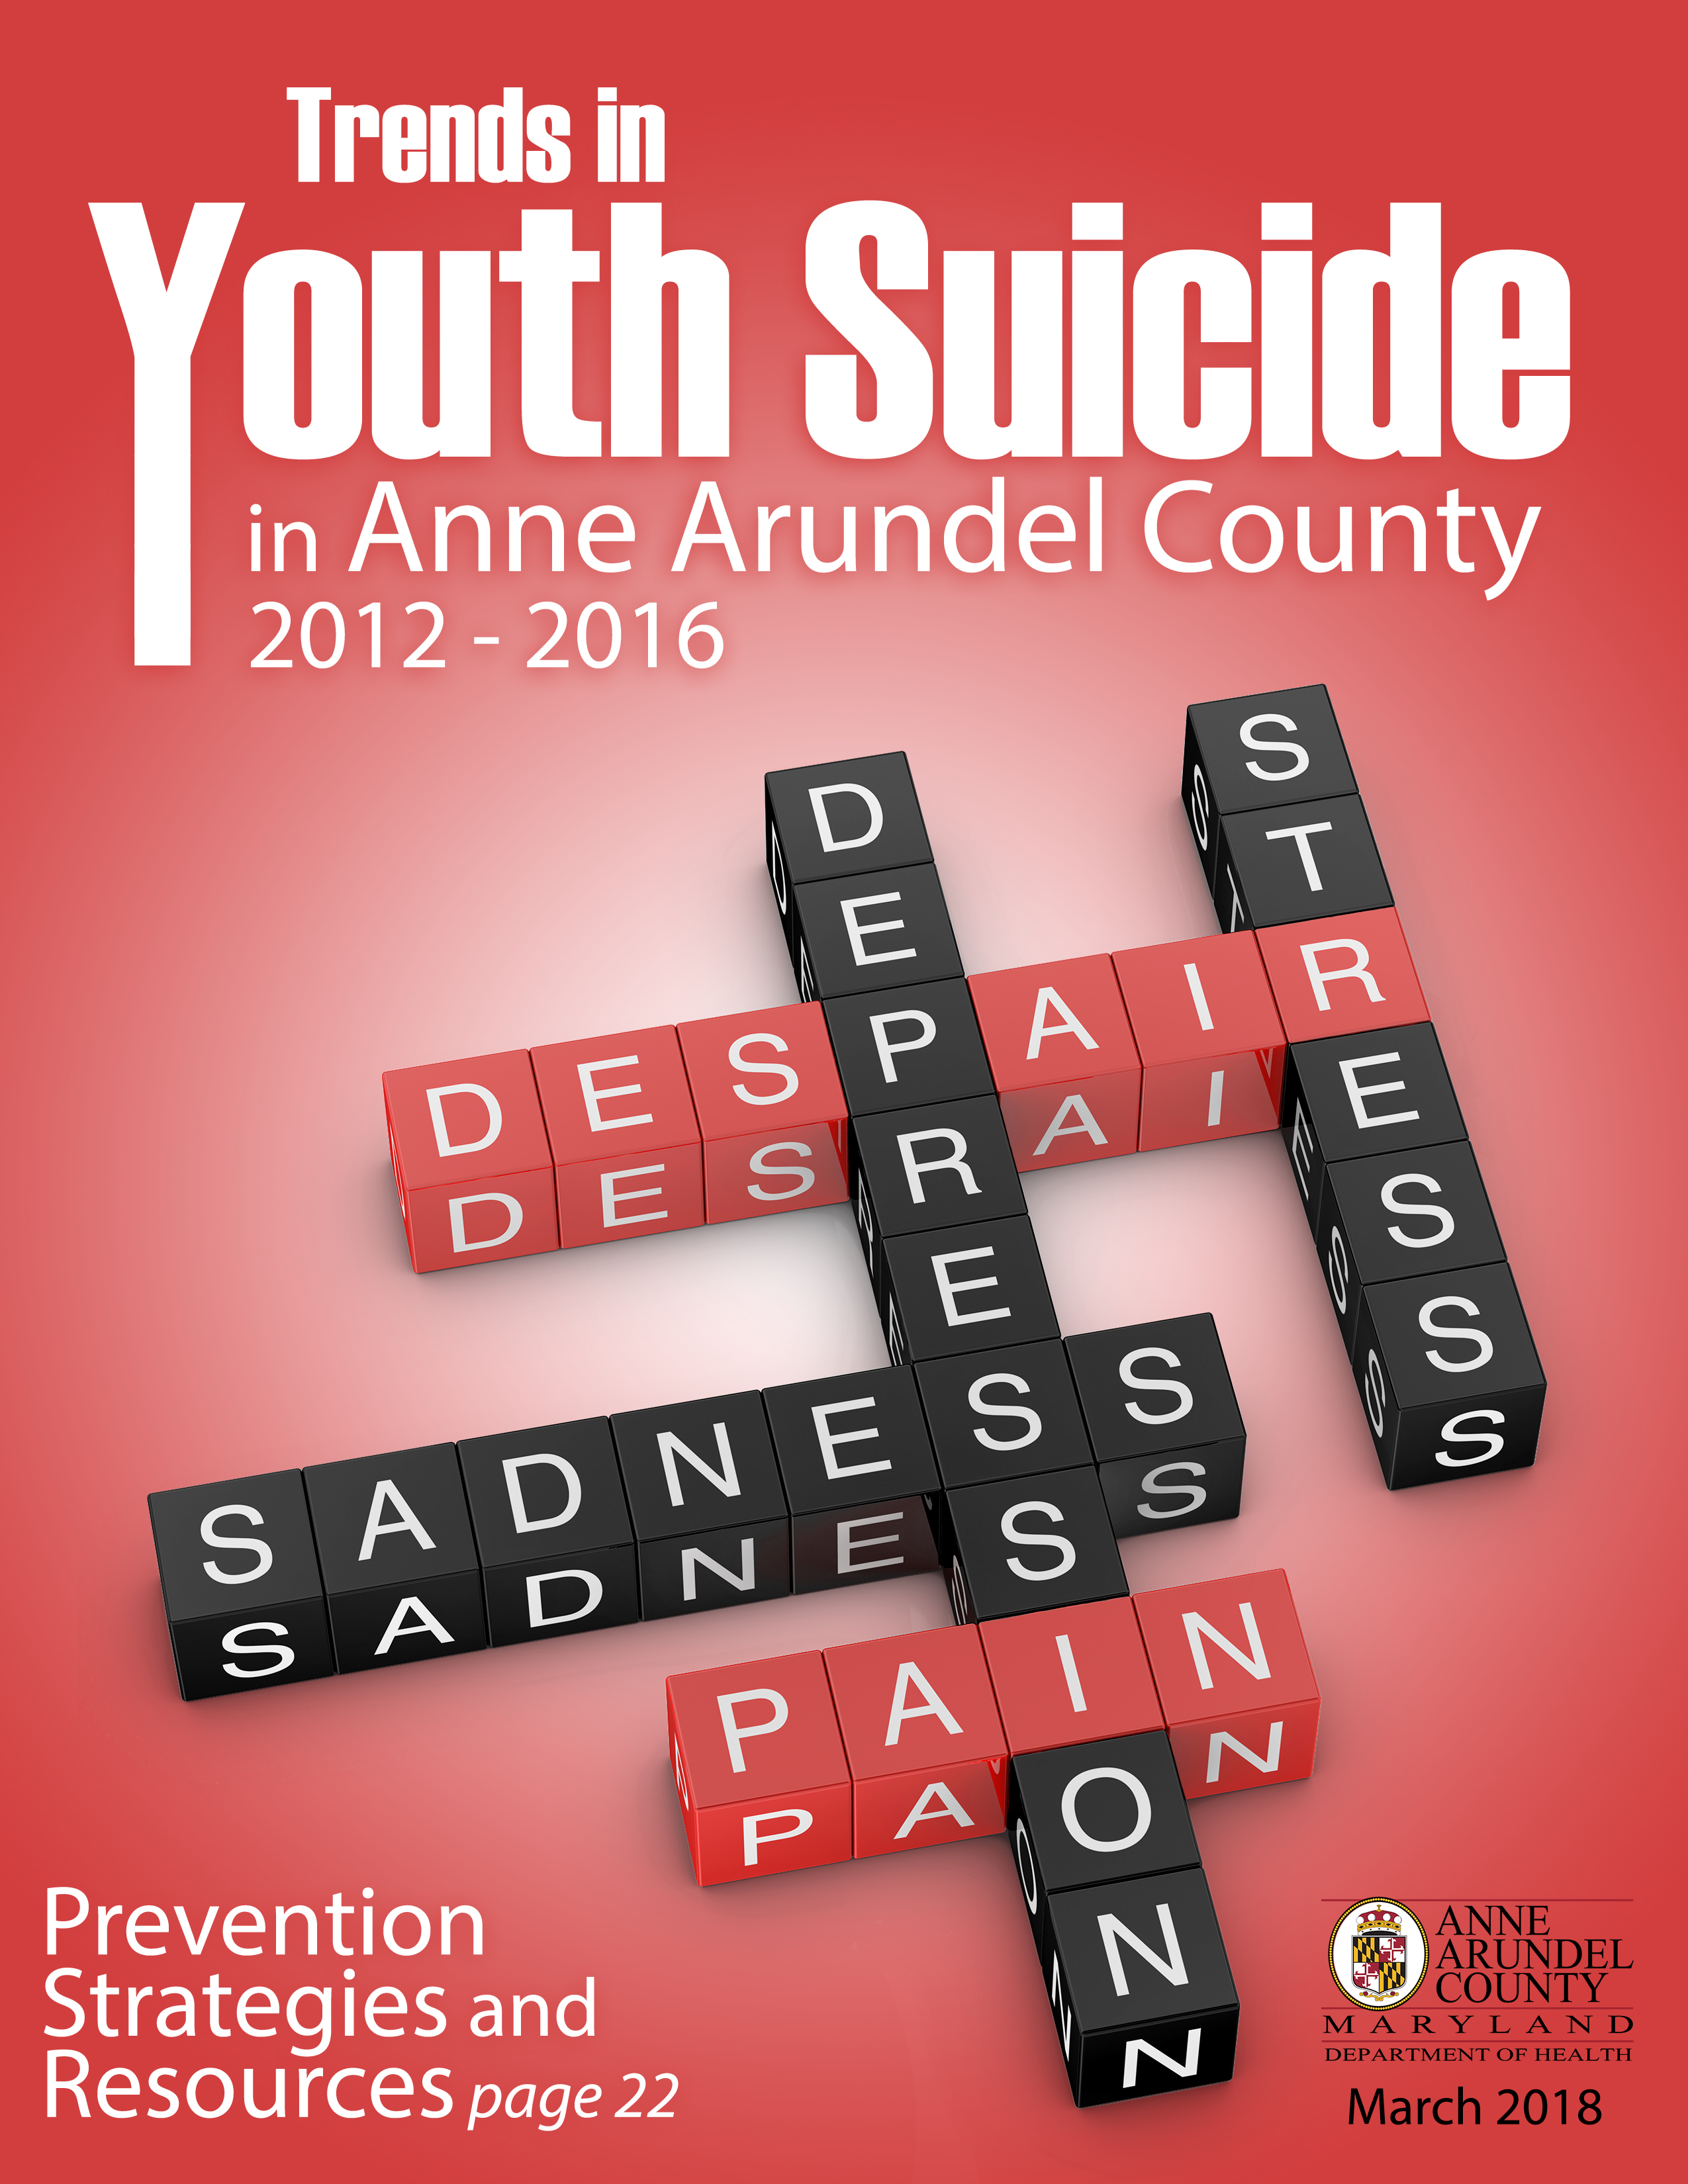 Trends in Youth Suicide in Anne Arundel County 2012-2016